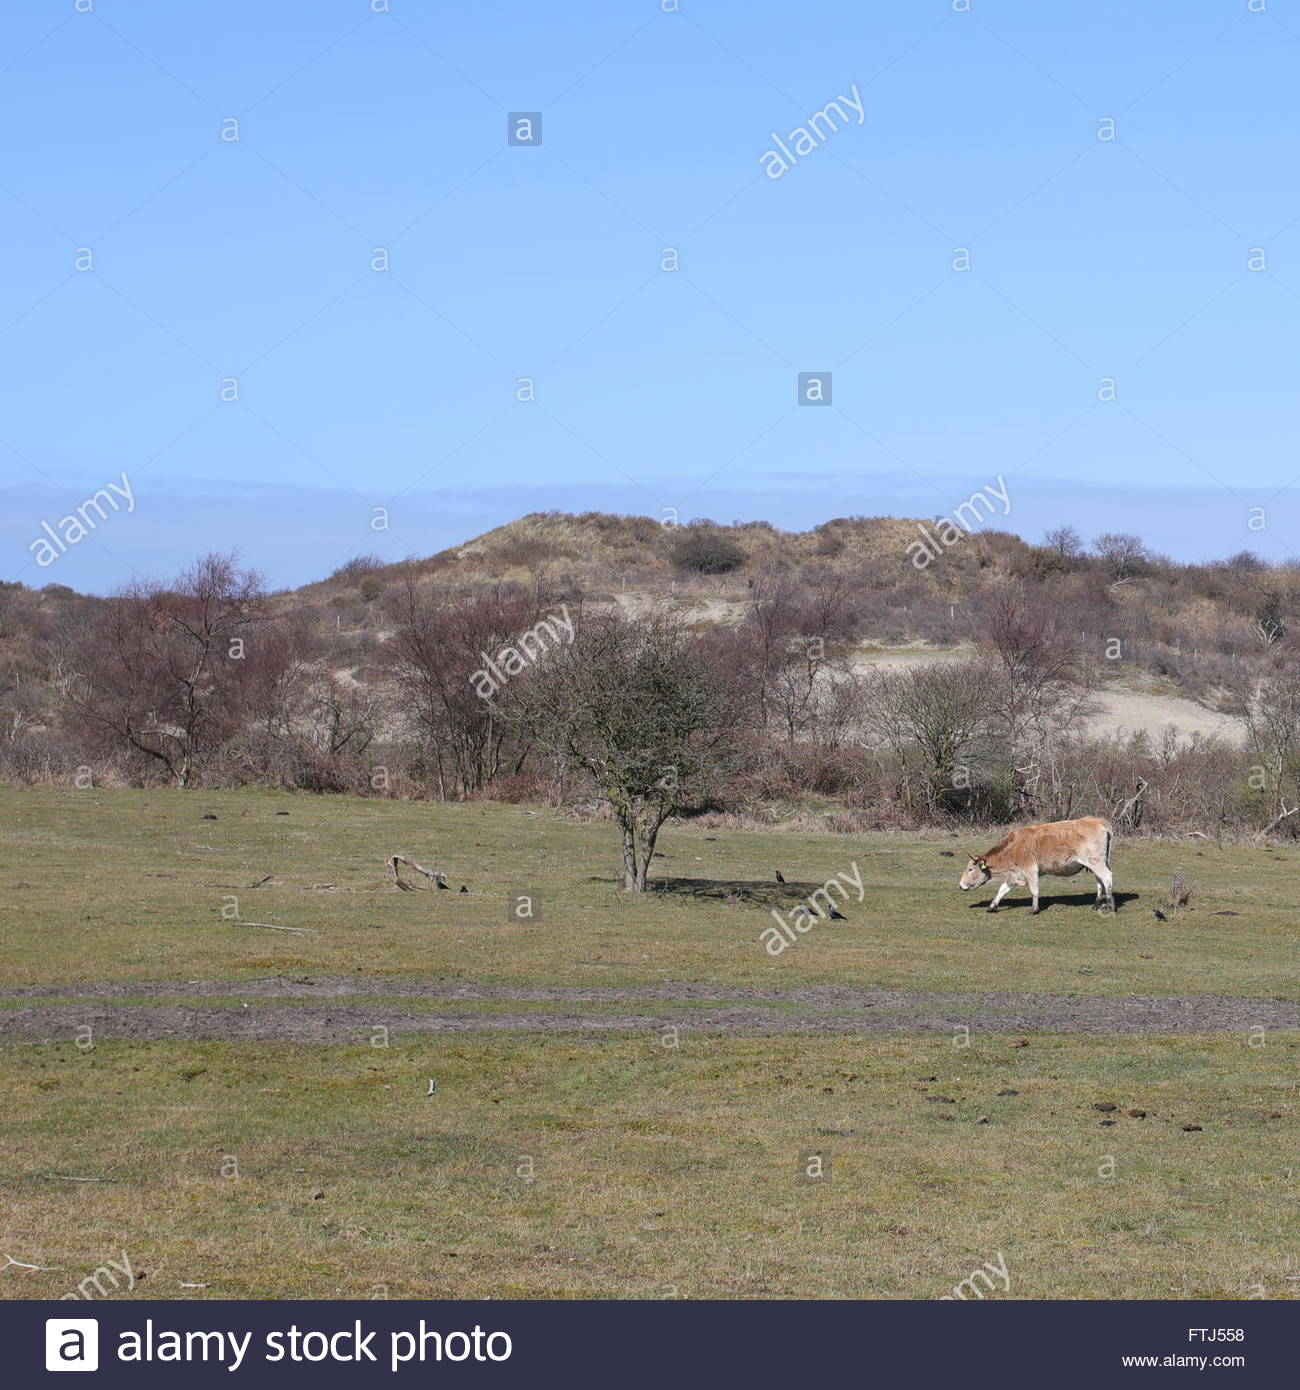 solitaire-cow-on-wide-and-large-field-cr